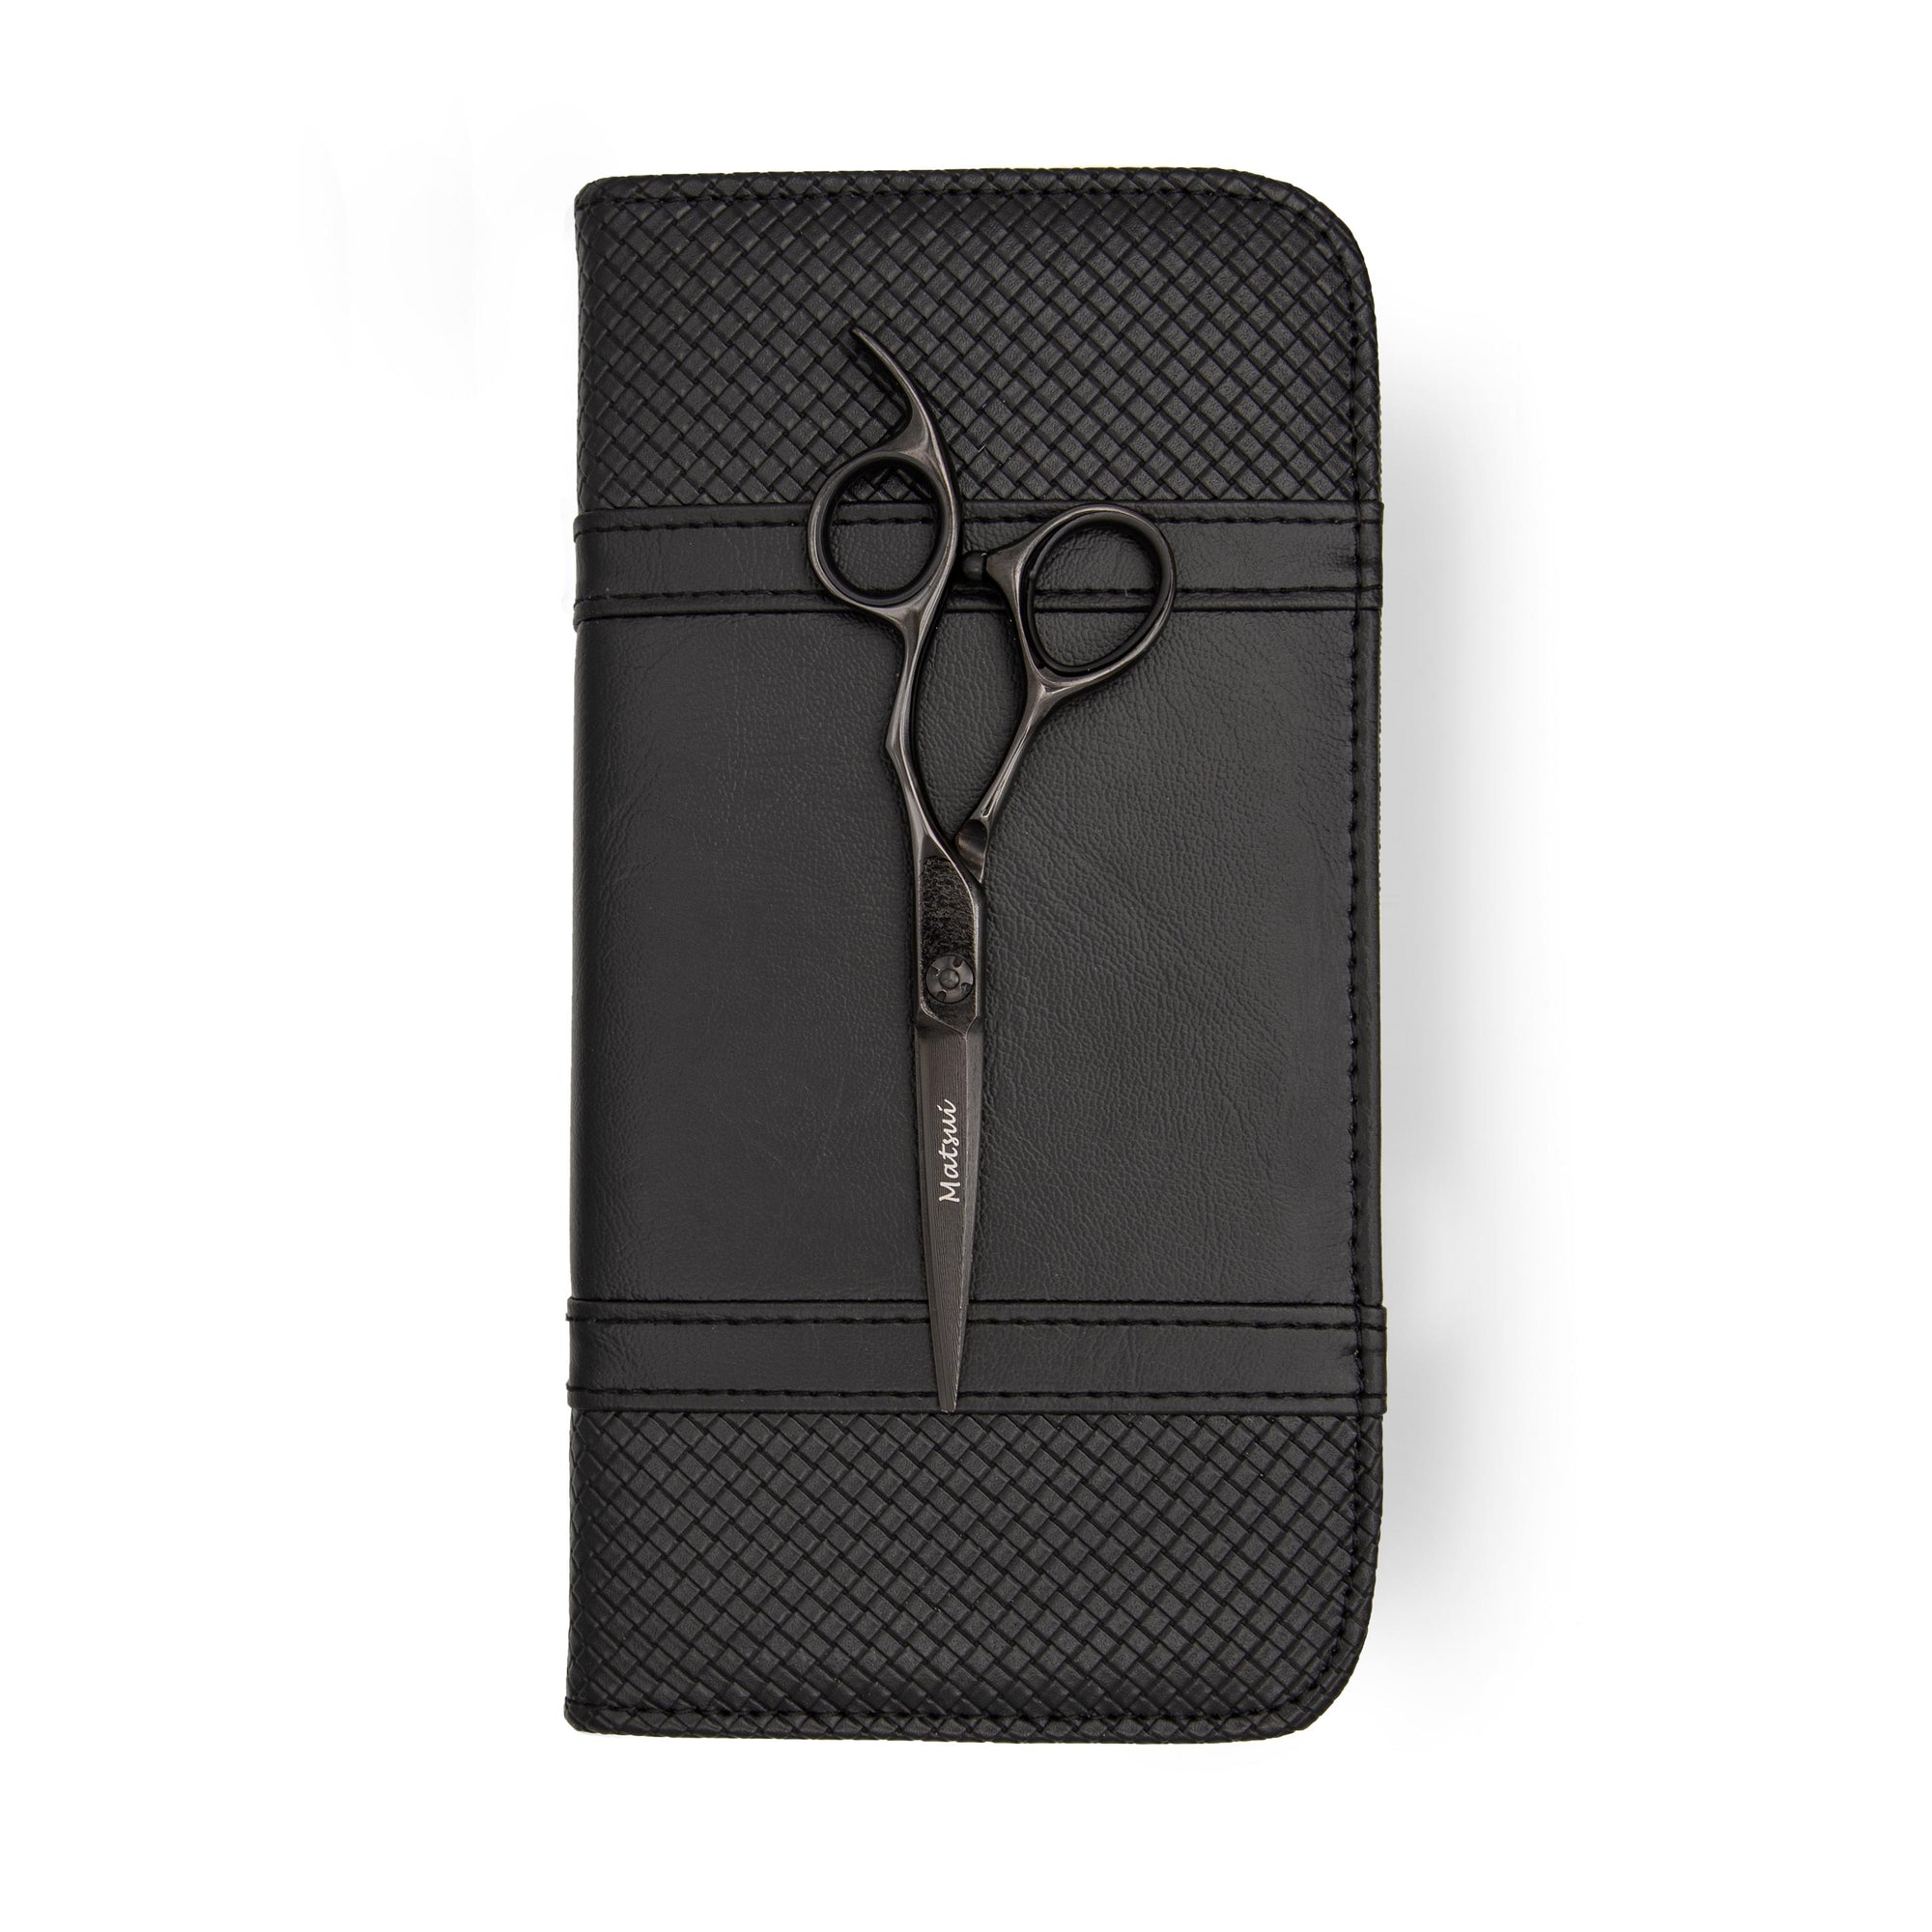 2020 Matsui Matte Black Damascus Offset Scissors (1828549001277)